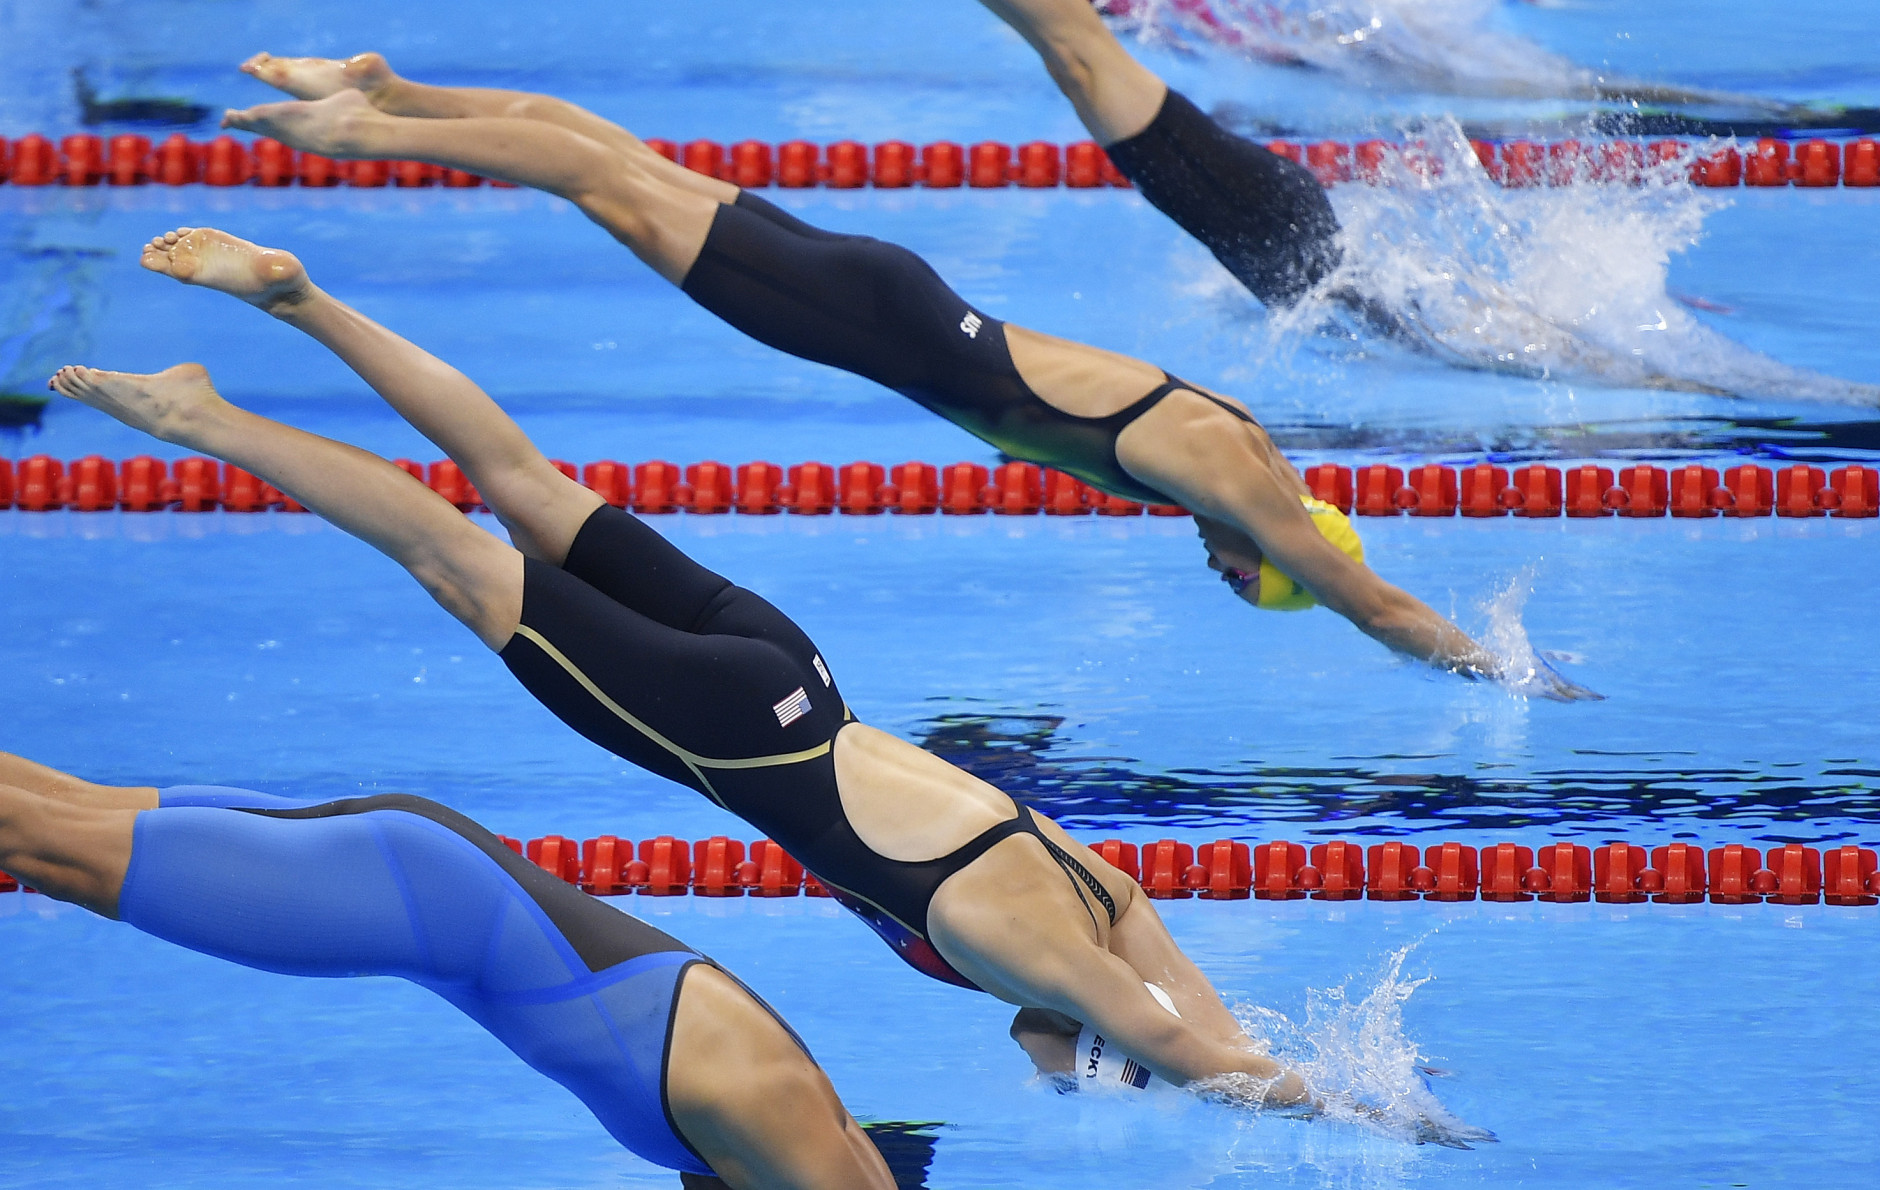 United States' Katie Ledecky, second from front, starts a women's 200-meter freestyle heat during the swimming competitions at the 2016 Summer Olympics, Monday, Aug. 8, 2016, in Rio de Janeiro, Brazil. (AP Photo/Martin Meissner)